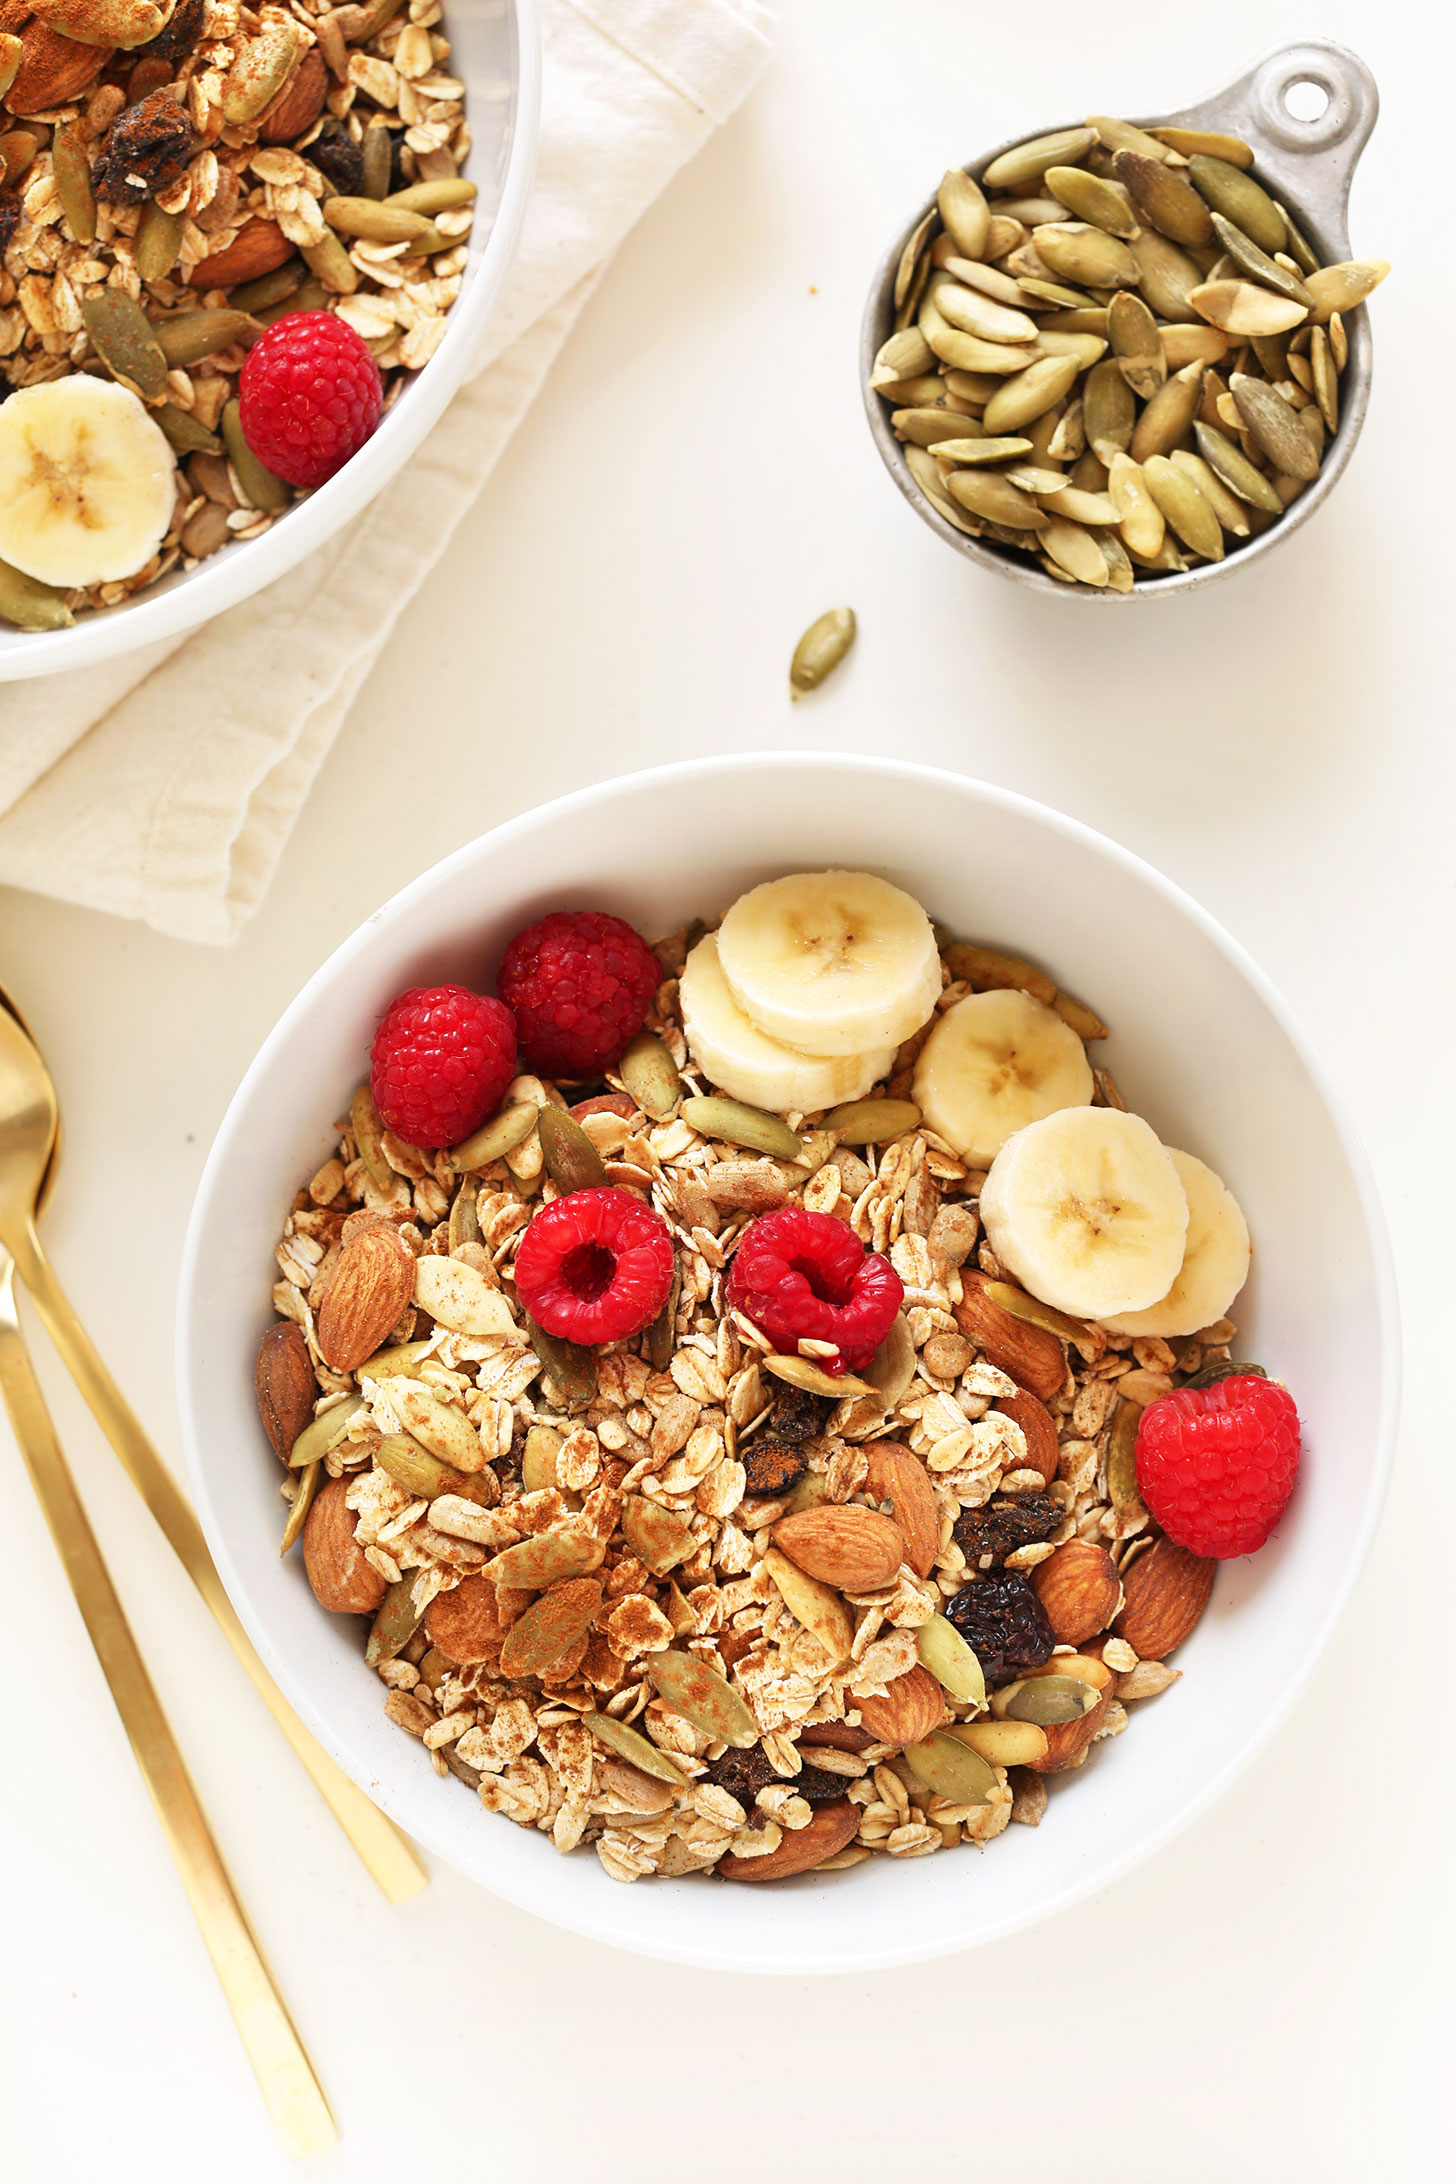 Bowl of our quick and easy muesli recipe for a gluten-free vegan breakfast